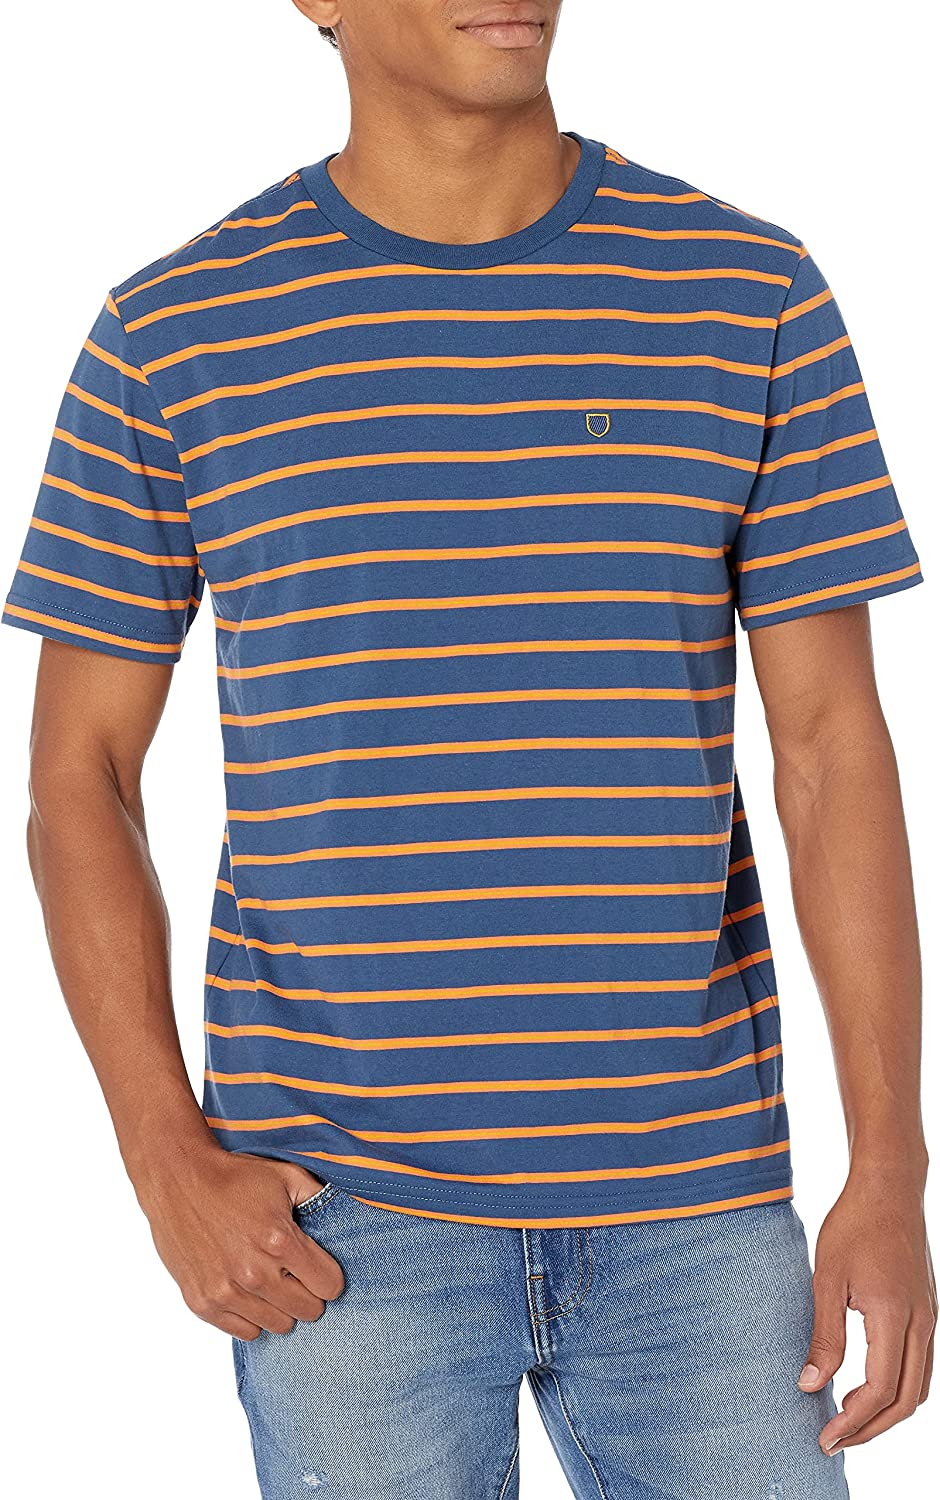 Brixton Men's Ss Free shipping anywhere Max 68% OFF in the nation Knit Hilt Shield